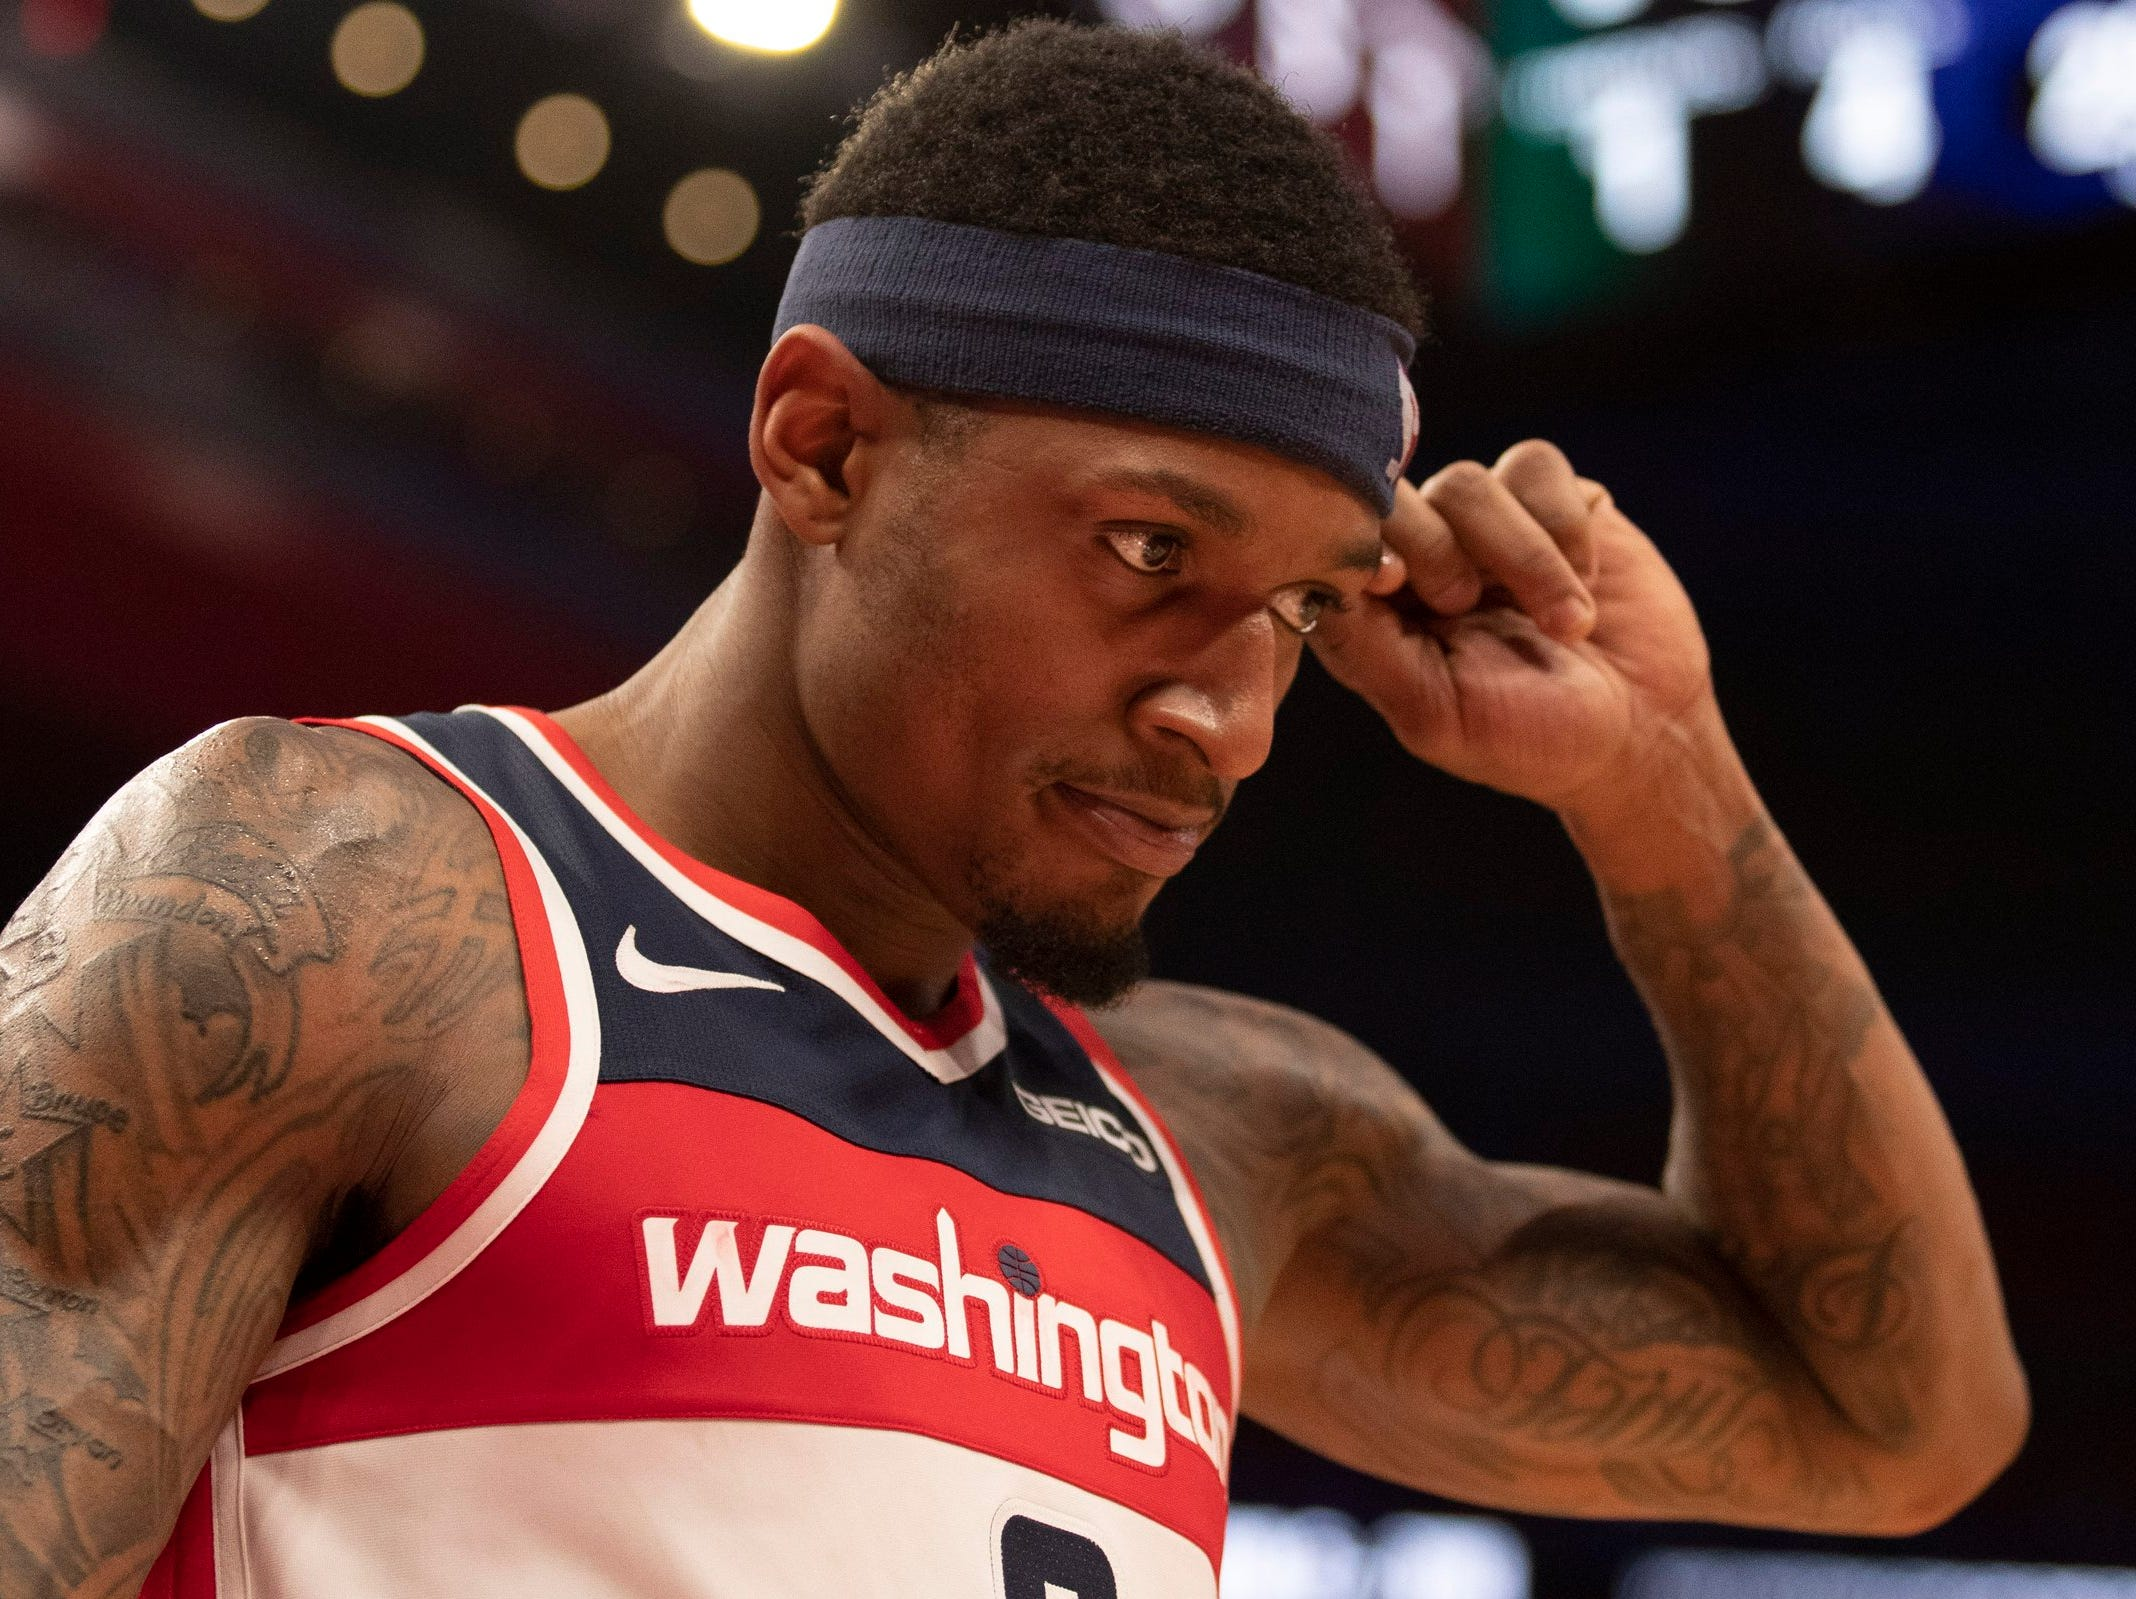 Washington Wizards guard Bradley Beal (3) walks off the court during the fourth quarter against the Detroit Pistons at Little Caesars Arena.